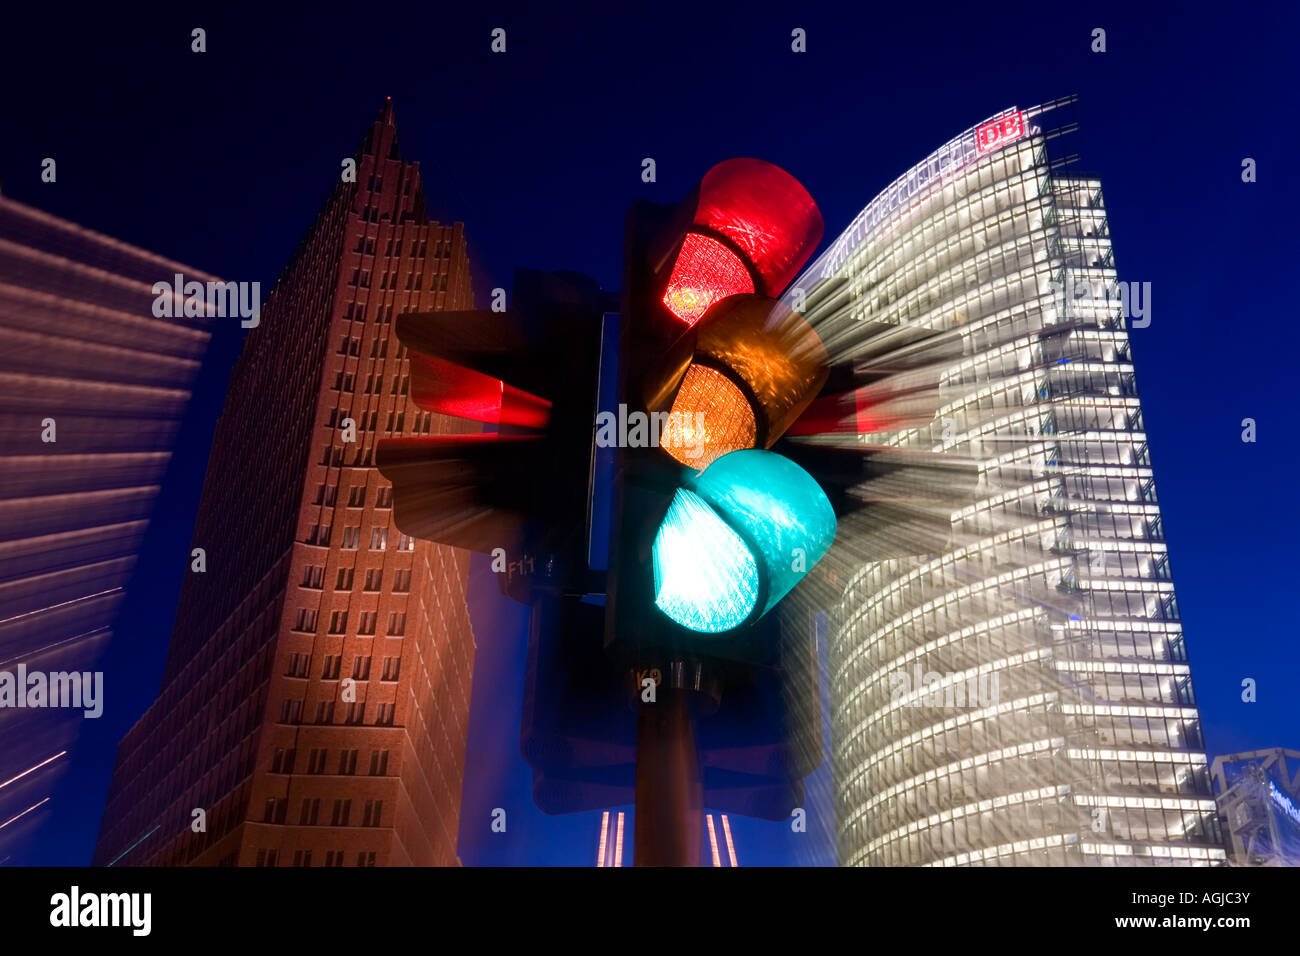 Modern skyscrapers off of Potsdamer Platz former site of part of the Berlin Wall Berlin Germany - Stock Image